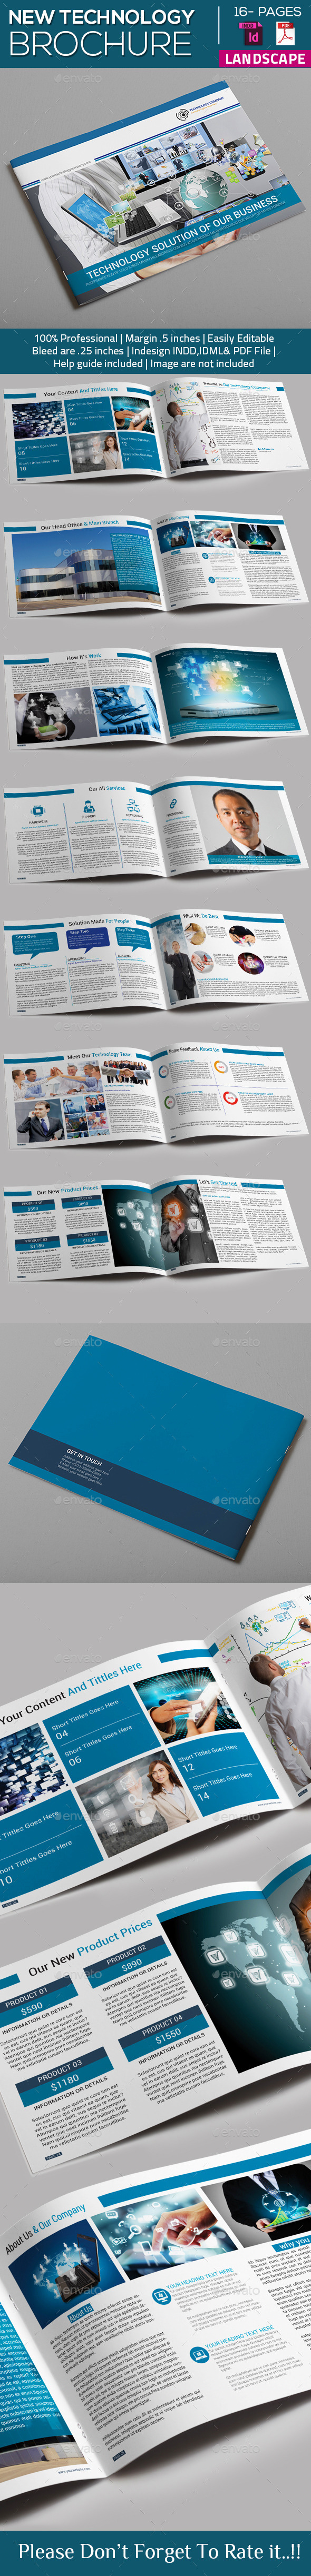 New Technology Brochure Catalog Templates - Catalogs Brochures